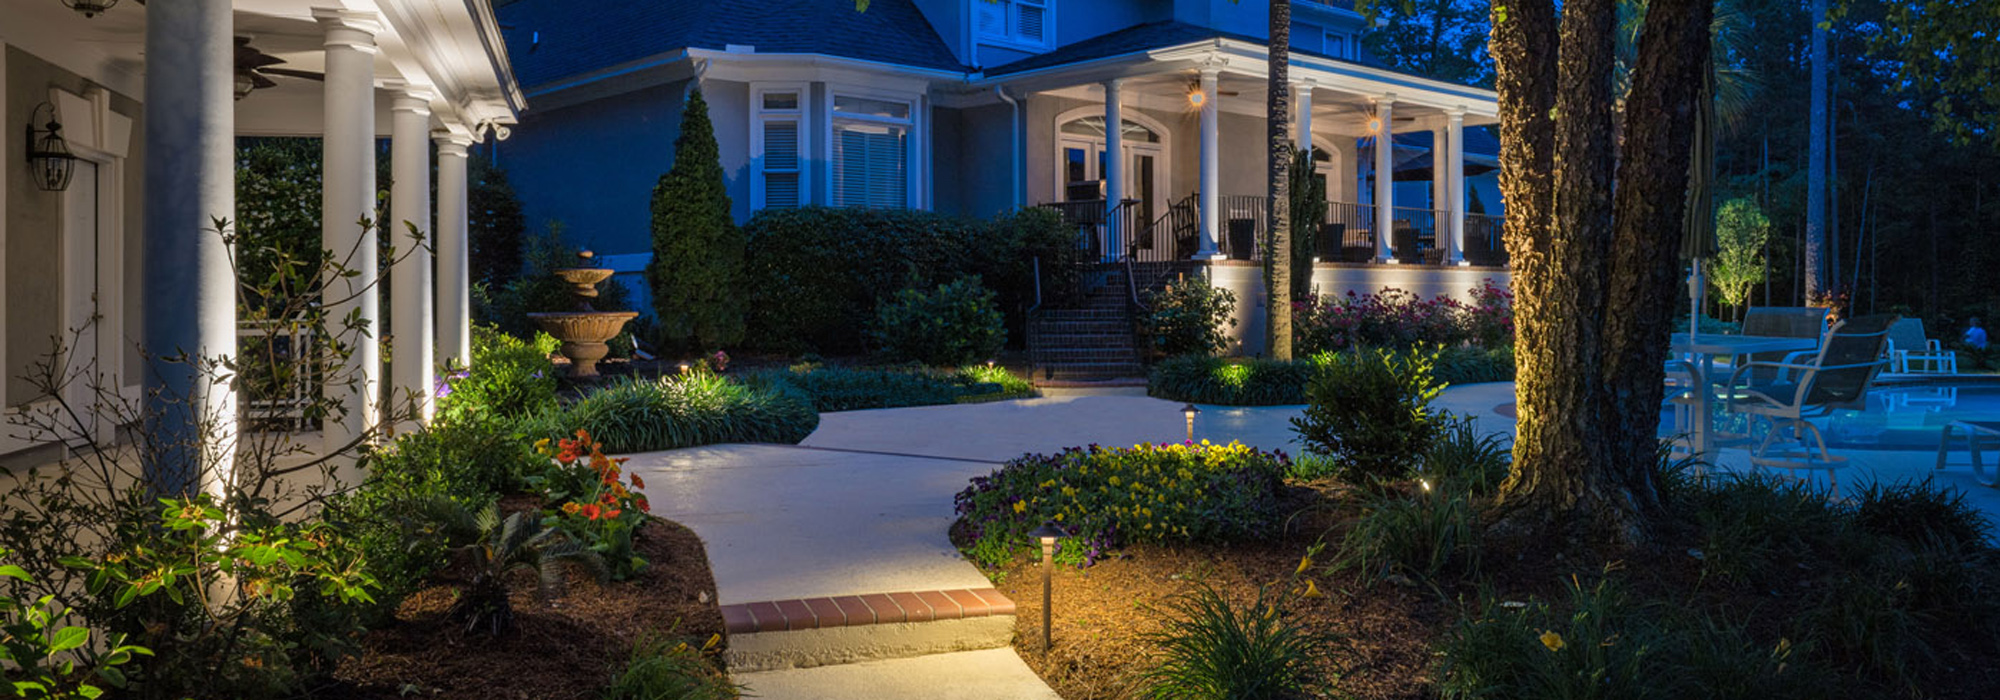 Blog outdoor lighting perspectives week to set up your free landscape lighting design consultation youll be one step ahead when memorial day weekend rolls in and summer celebrations mozeypictures Image collections